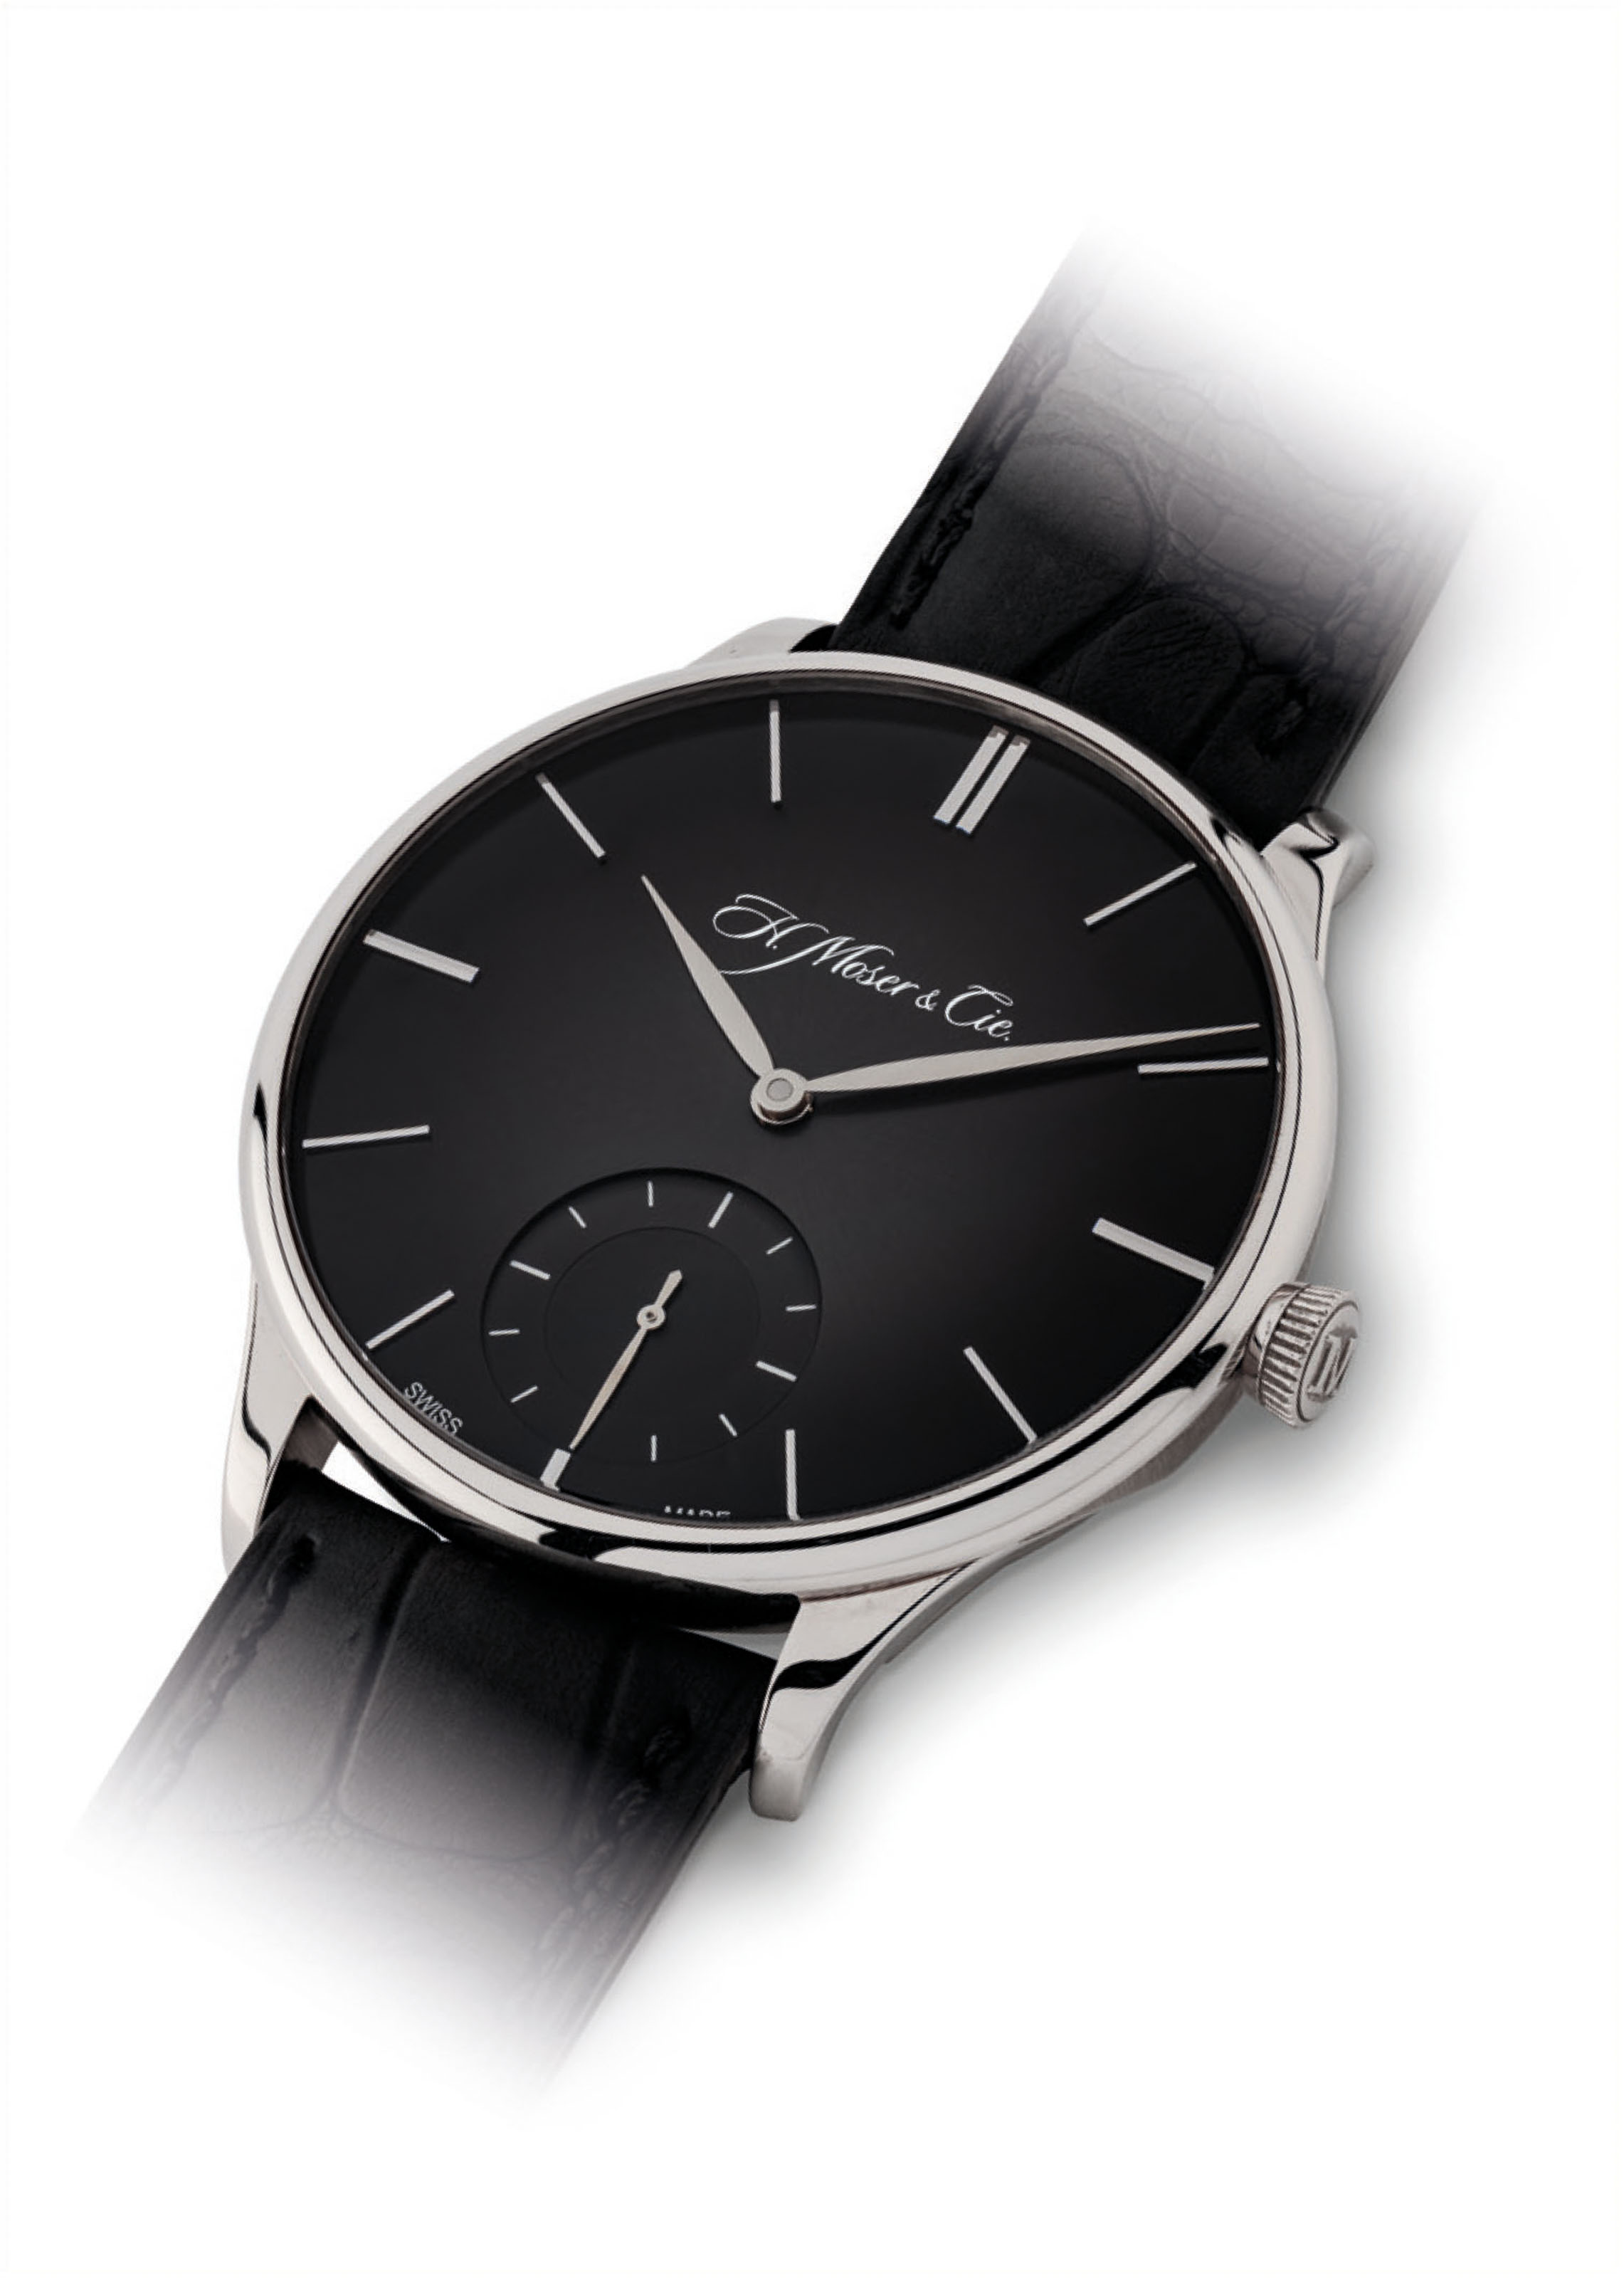 HENRY MOSER. A FINE 18K WHITE GOLD WRISTWATCH WITH HACK FEATURE